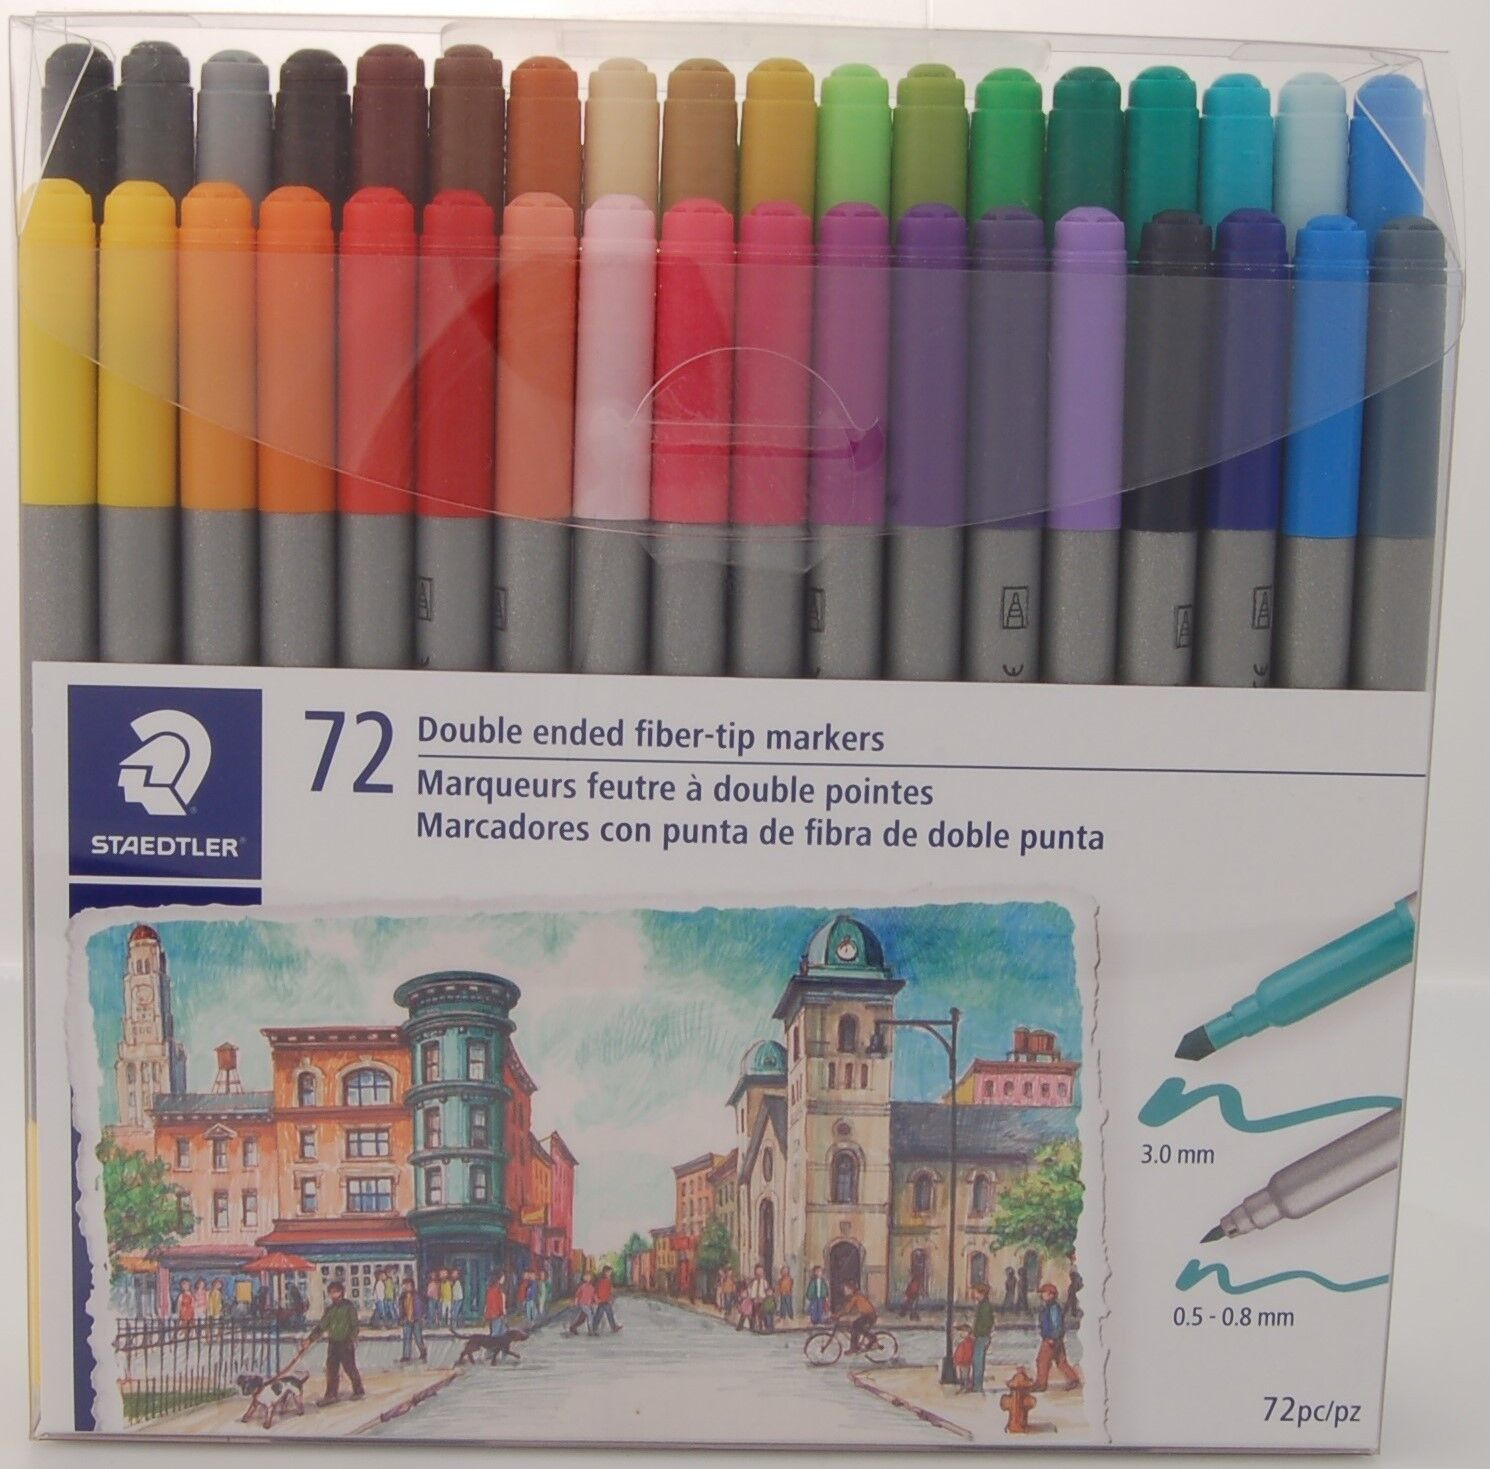 Staedtler Double Ended Fiber-tip Markers, For Sketching, Drawing, Illustrations, & Coloring, 72 Vibrant Colors, Washable, 320tb72 Lu